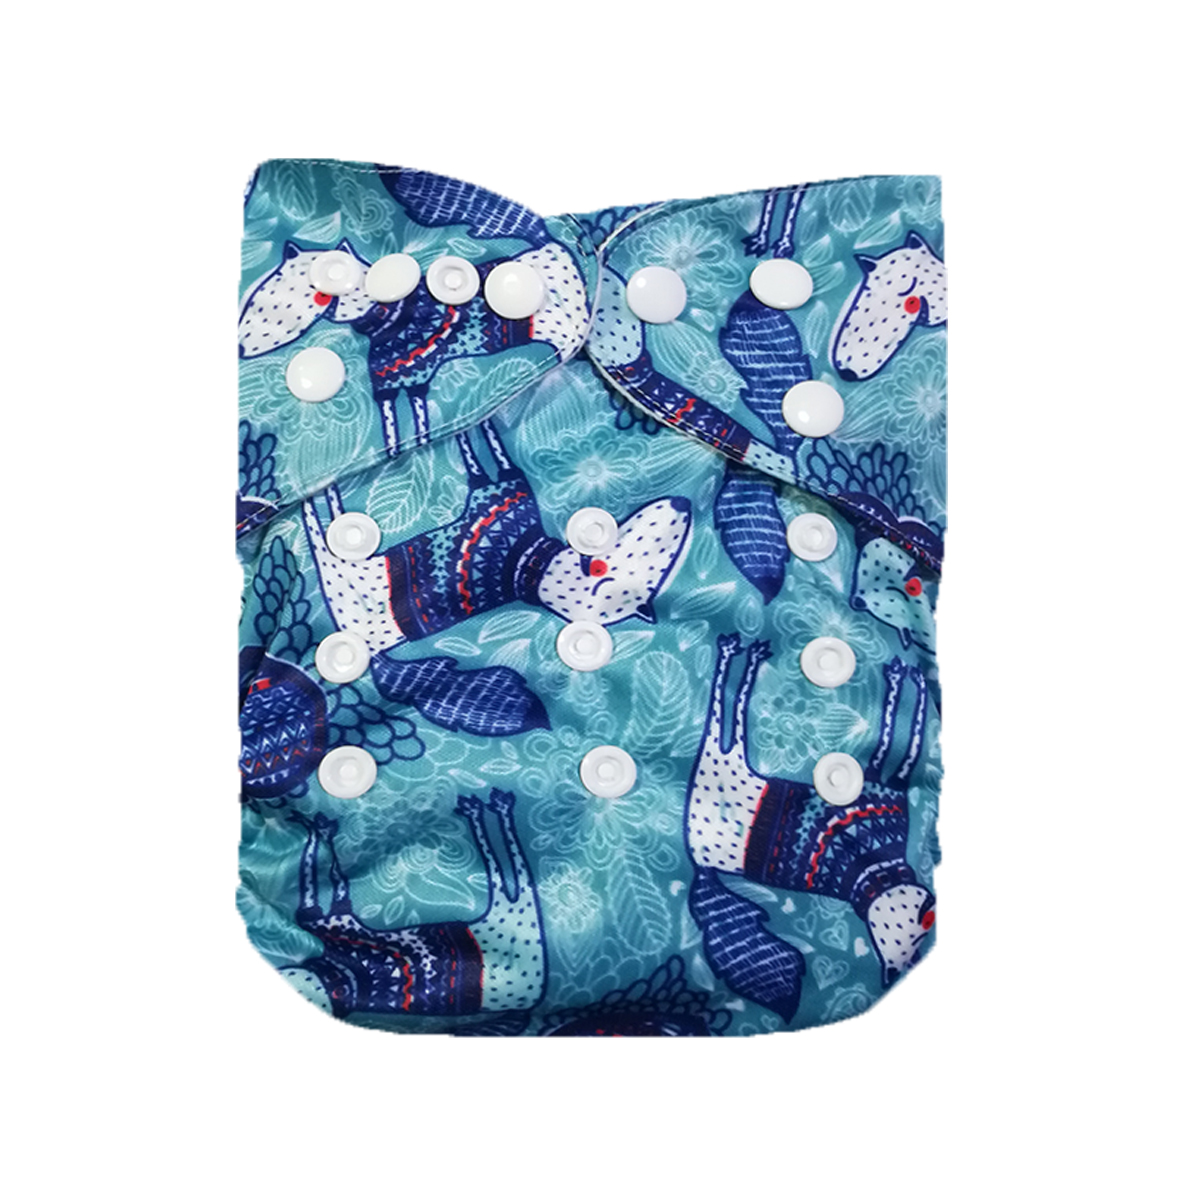 LilBit 1 Baby Reusbale Pocket Cloth Diaper Cover with a microfiber insert